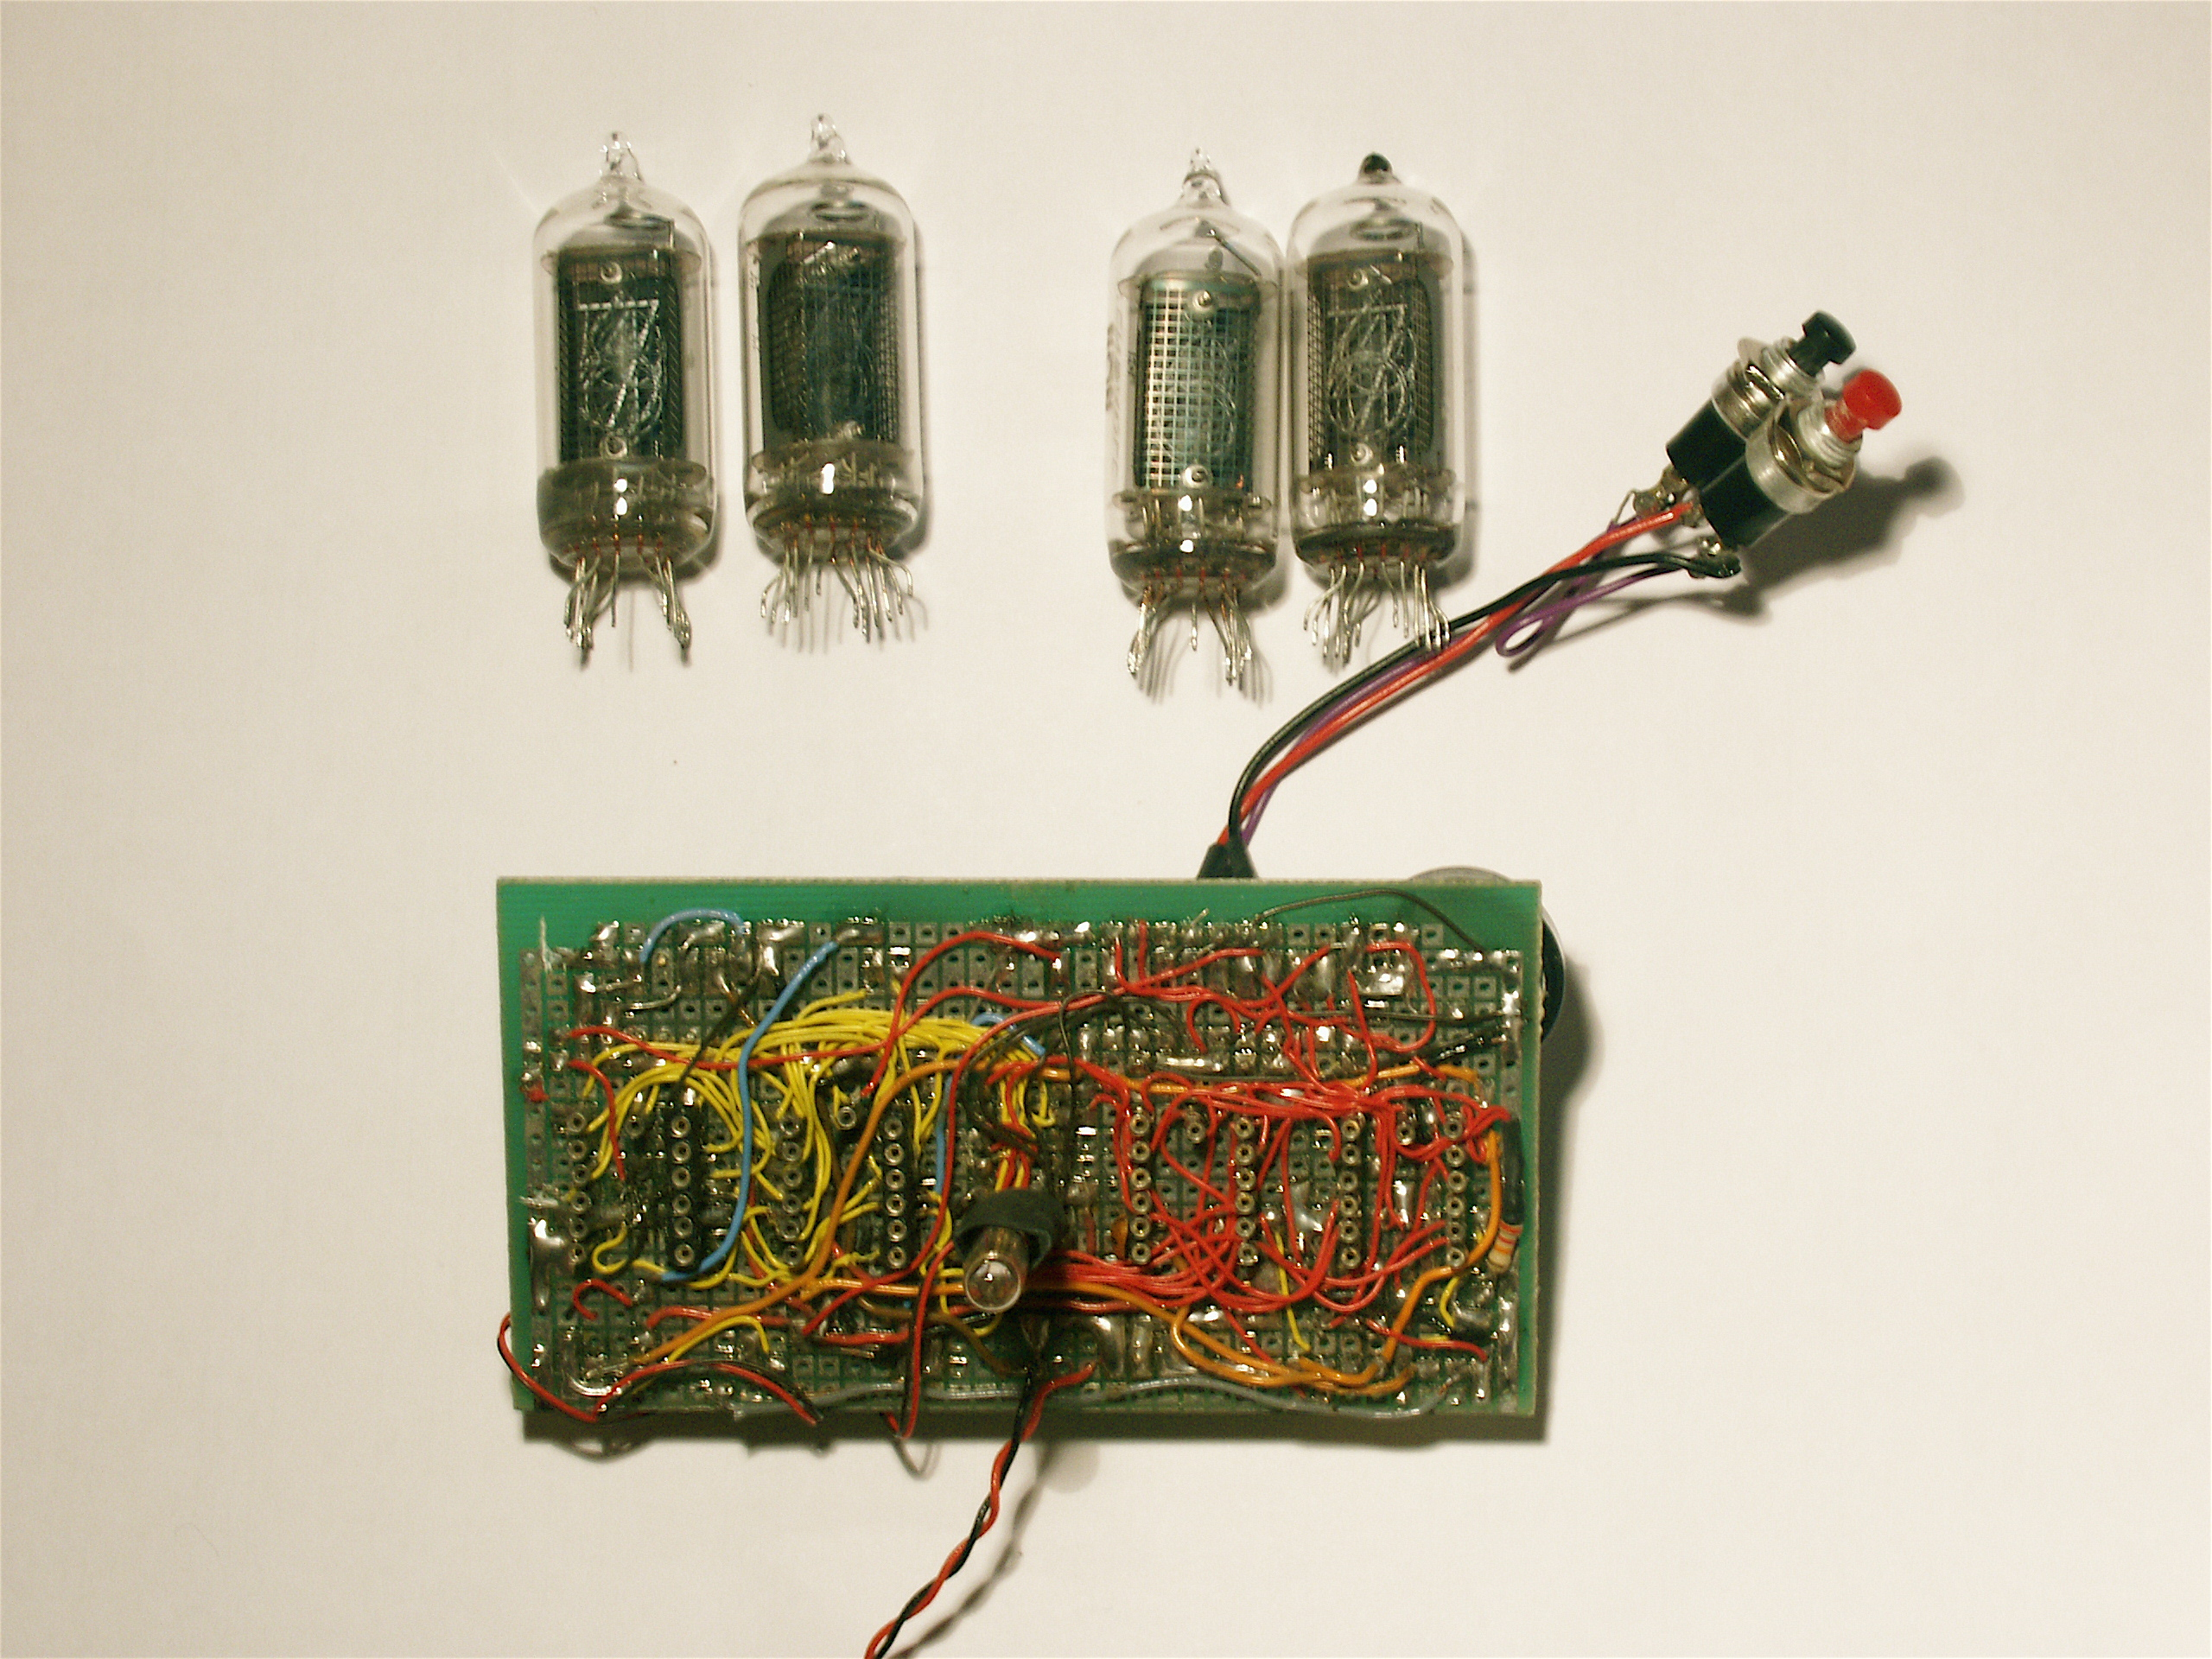 A Nixie Clock Davide Bucci Circuit The First Prototype And Nixies Seen From Below